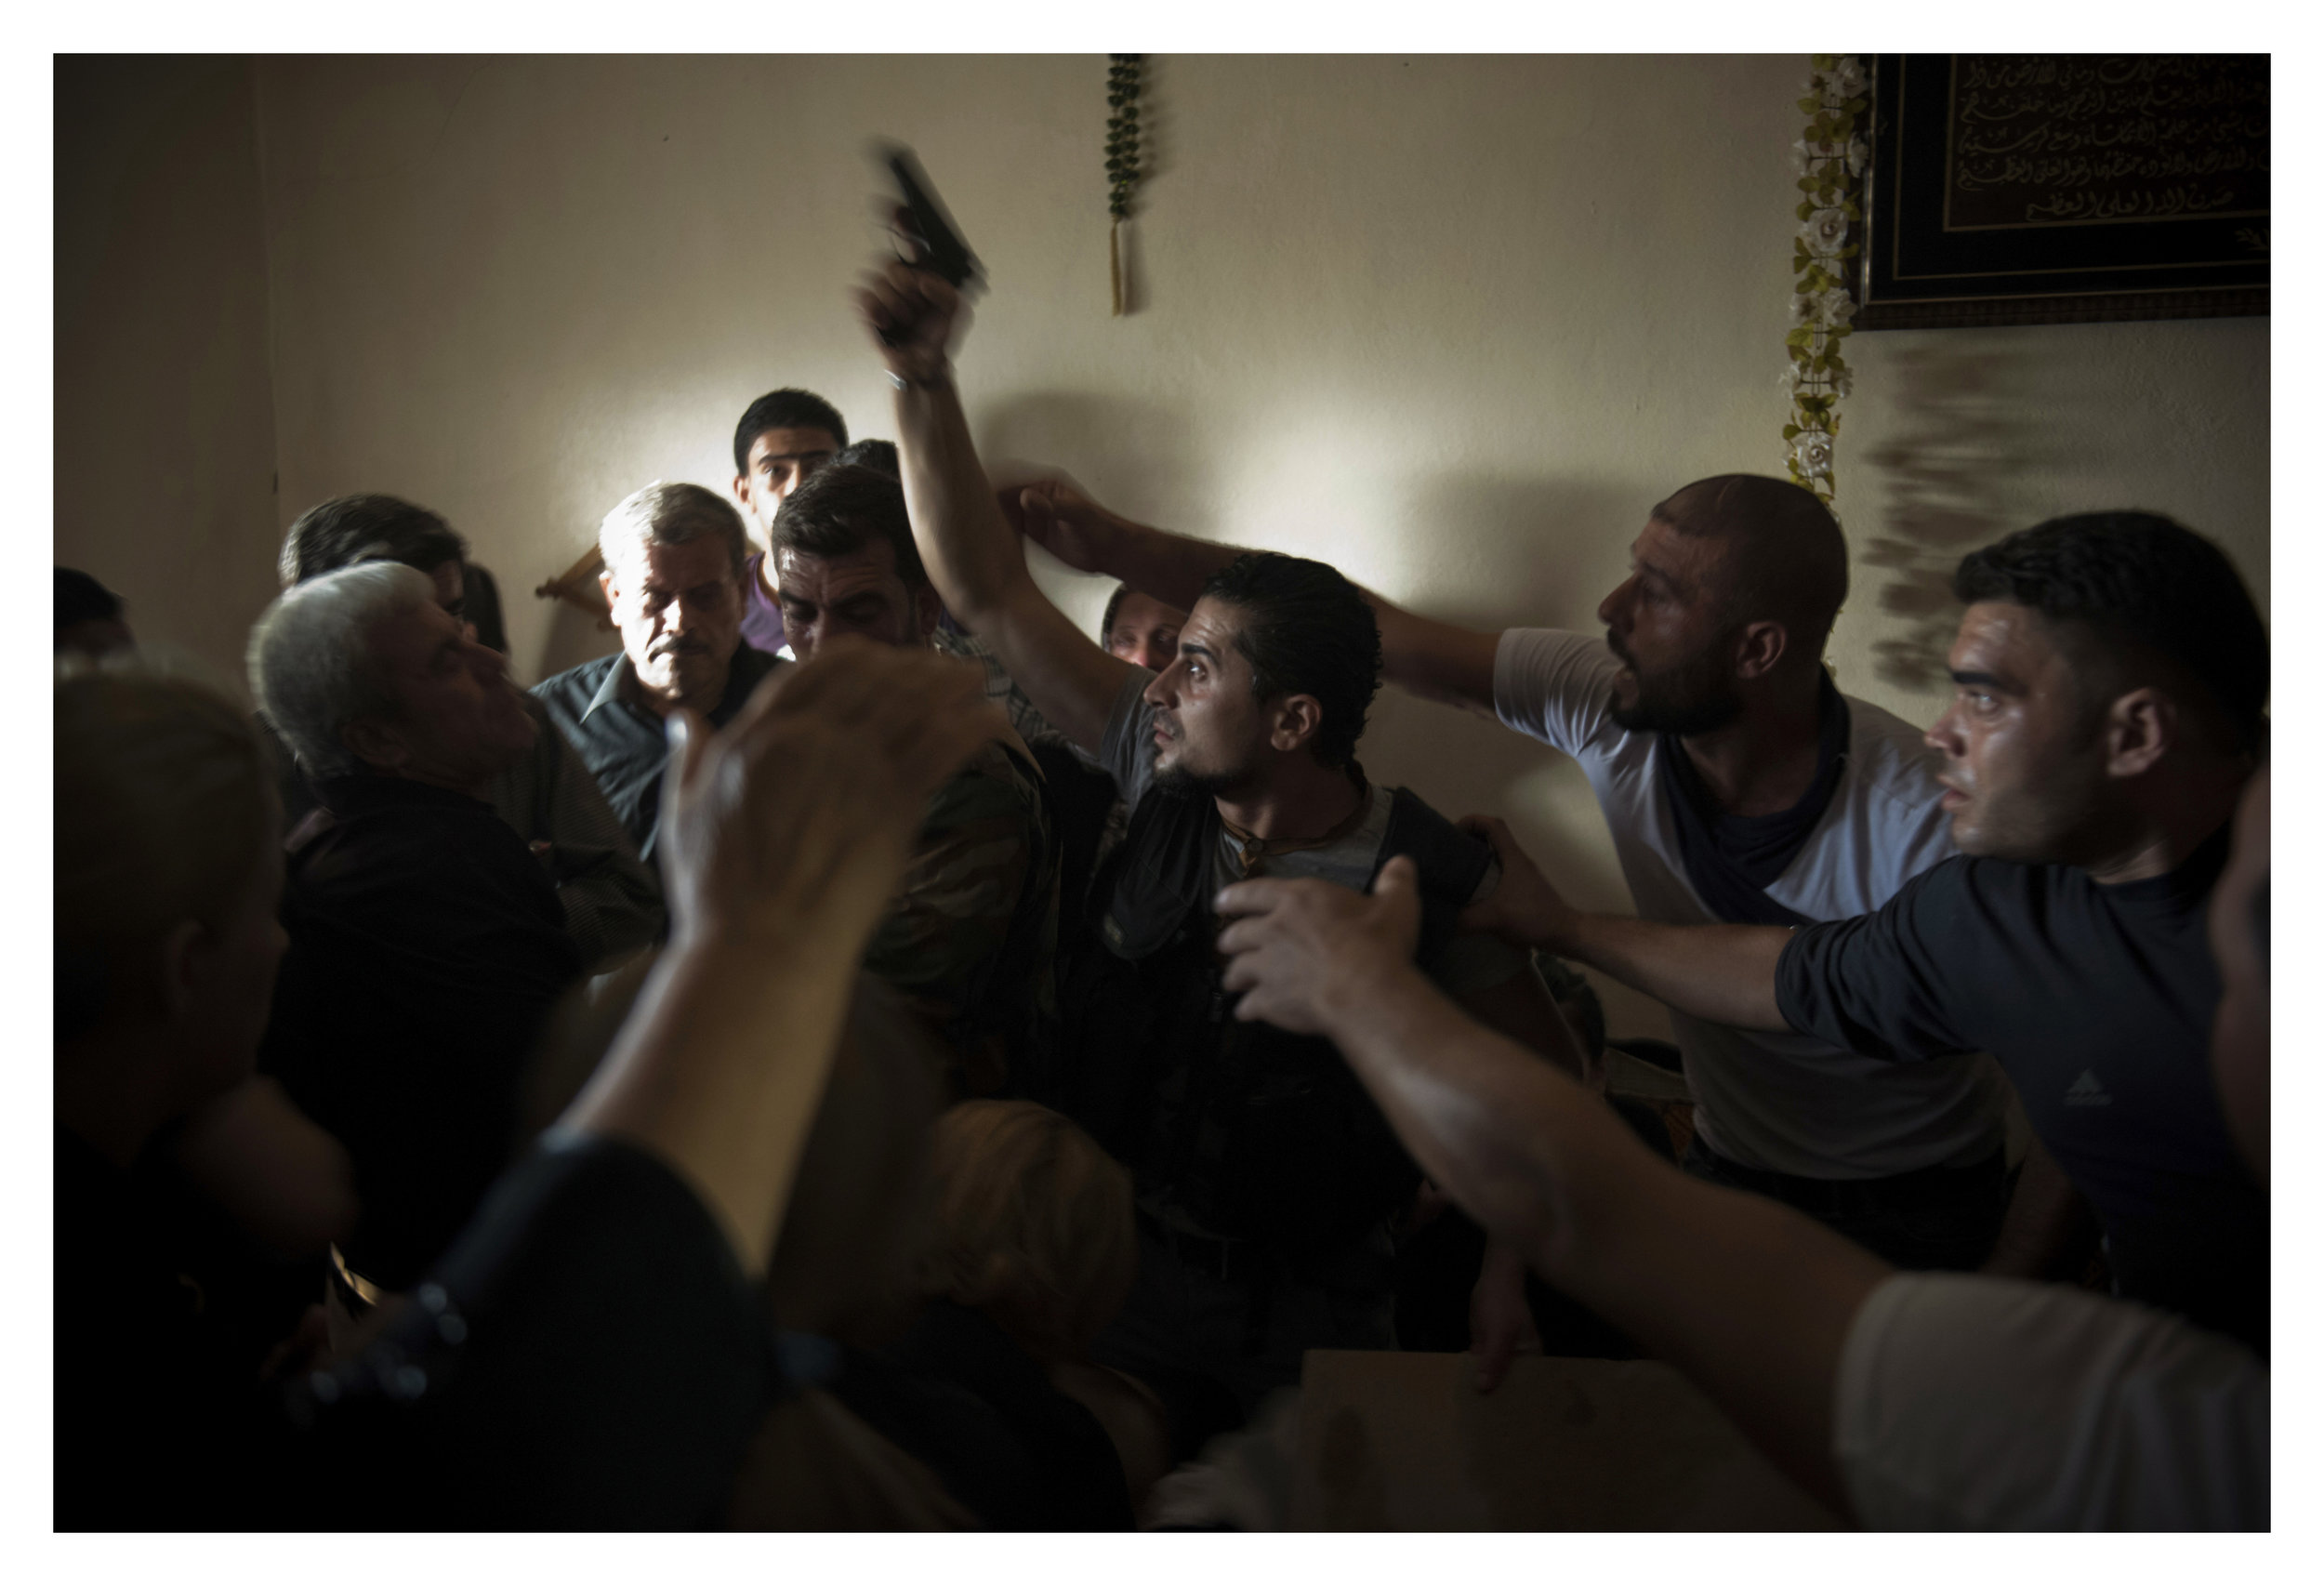 Bassel Barhoum (center) yells angrily after looking inside his brother's casket at his funeral in the village of Daqaqa in Latakia Province, Syria. Abu Layth died while fighting as an officer in the Syrian Army.